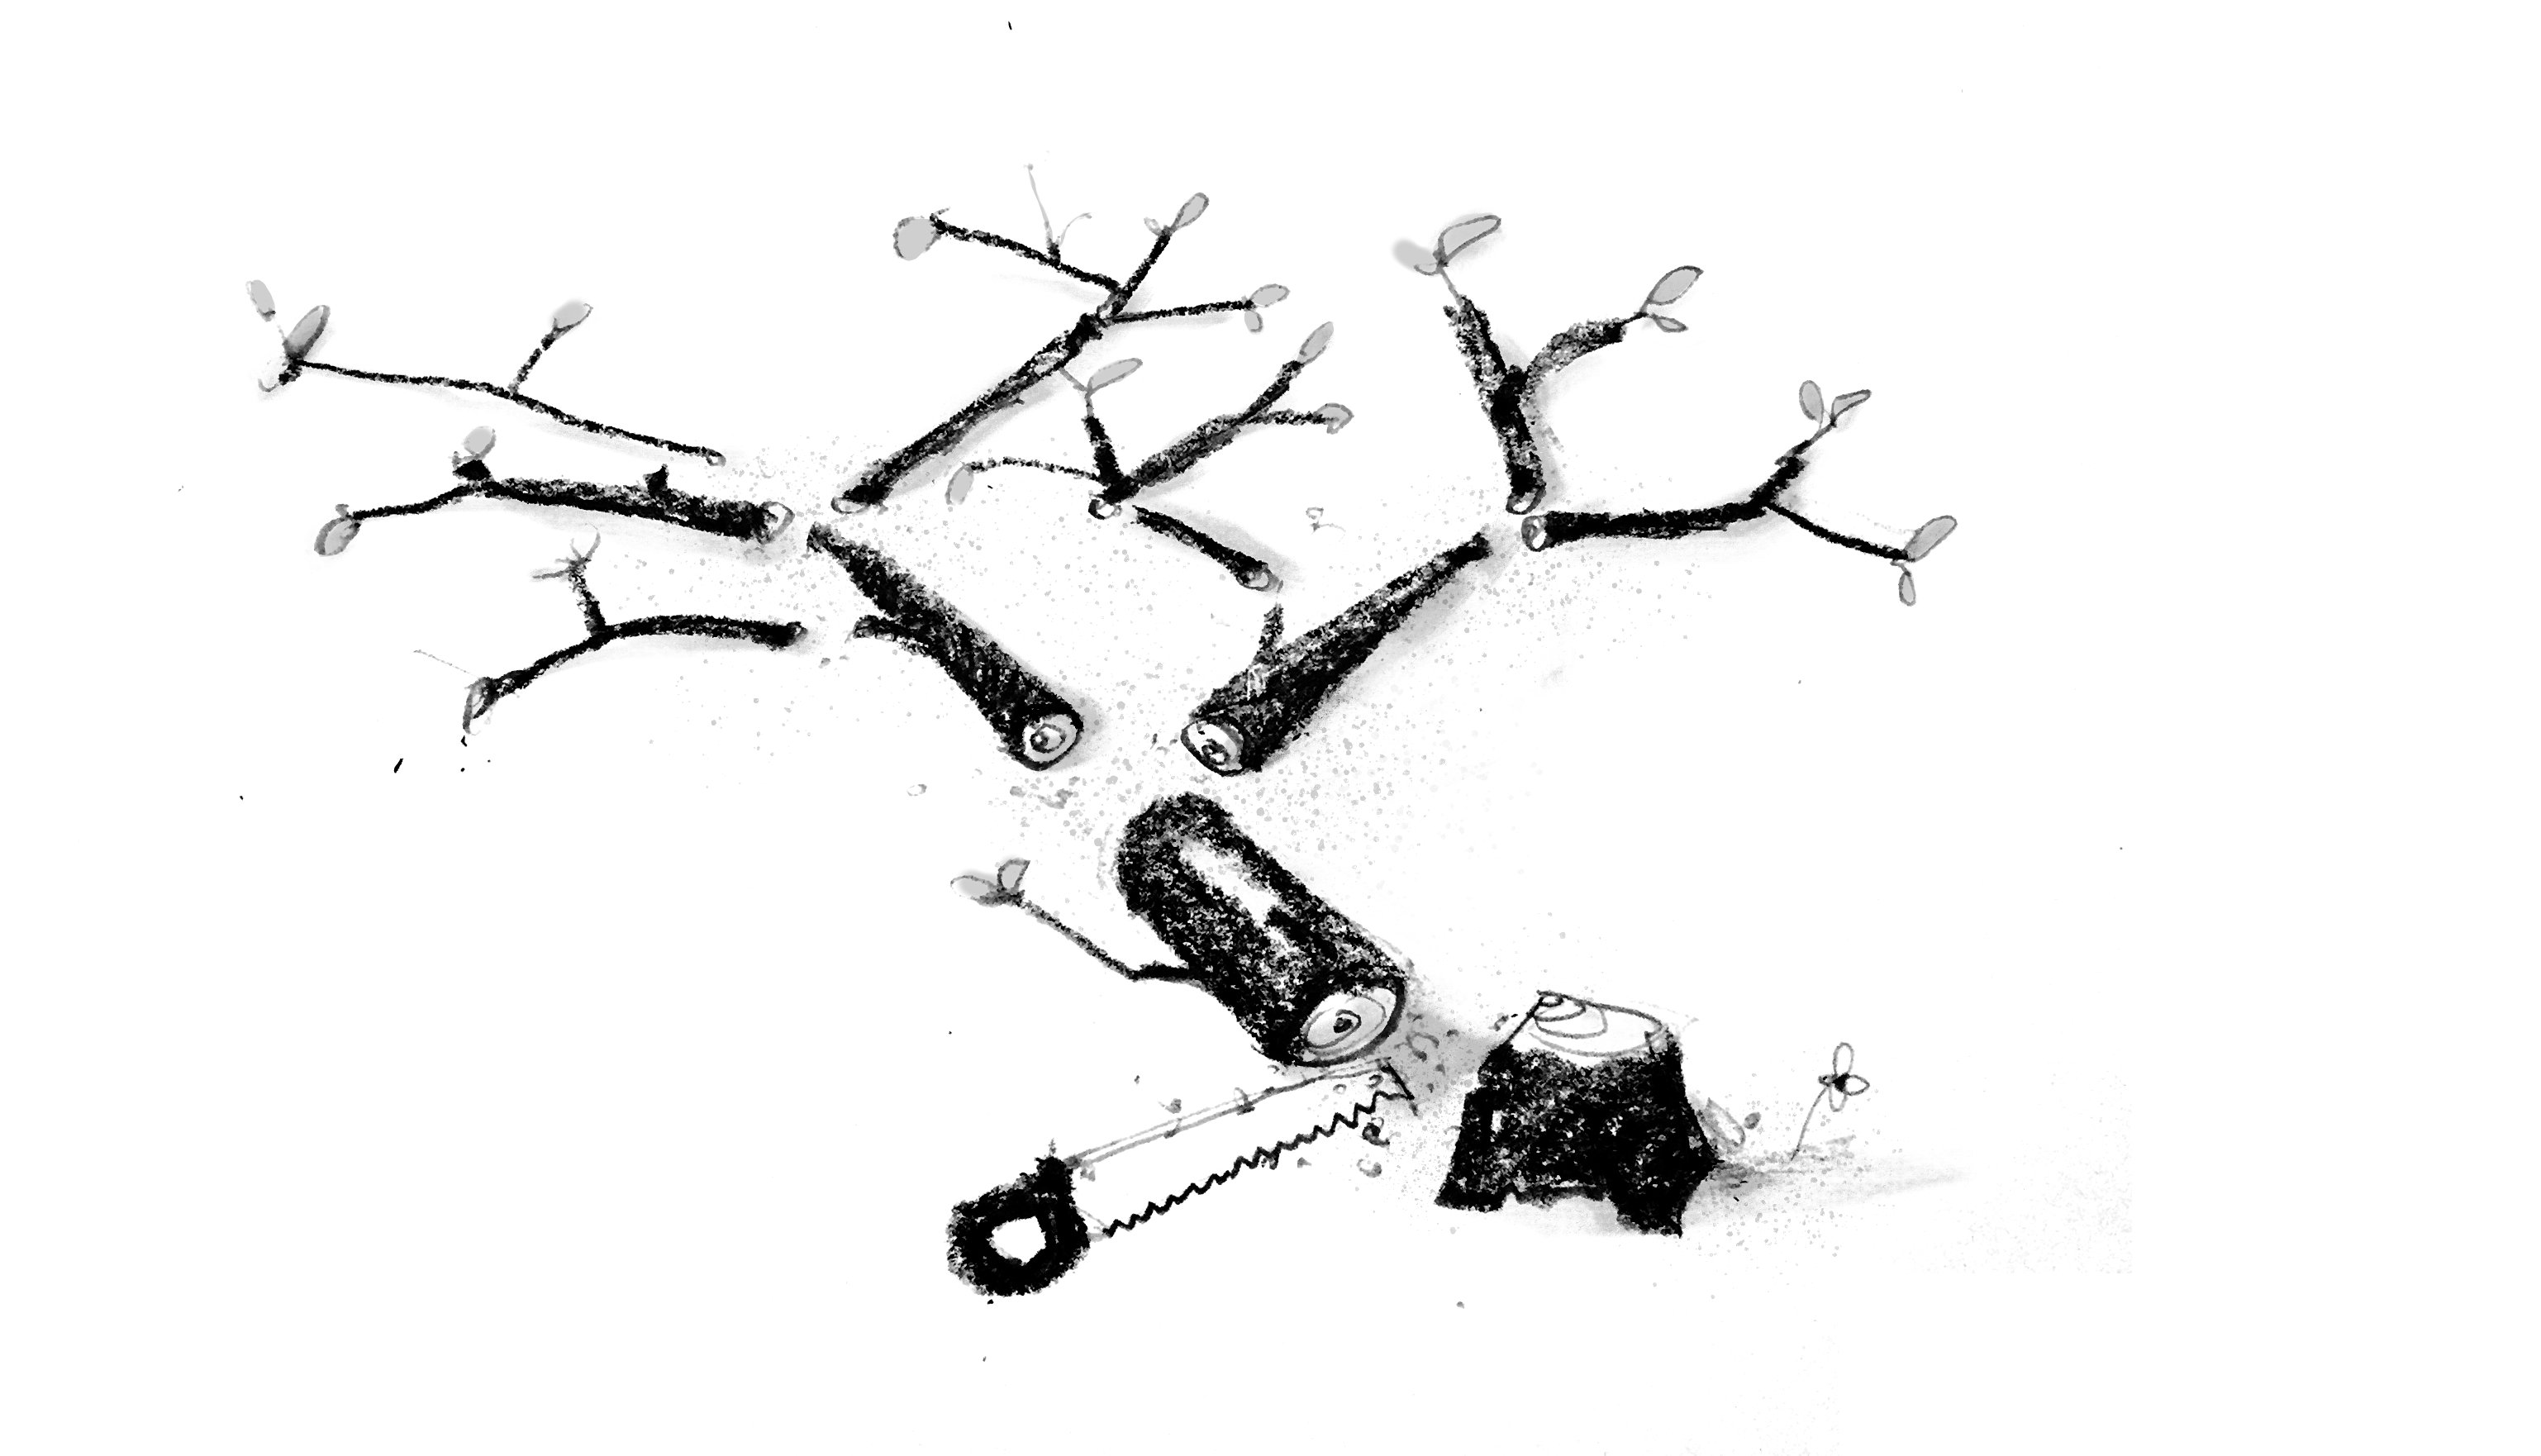 An illustration of a tree sawed at the trunk and in small pieces, with a handsaw nearby.